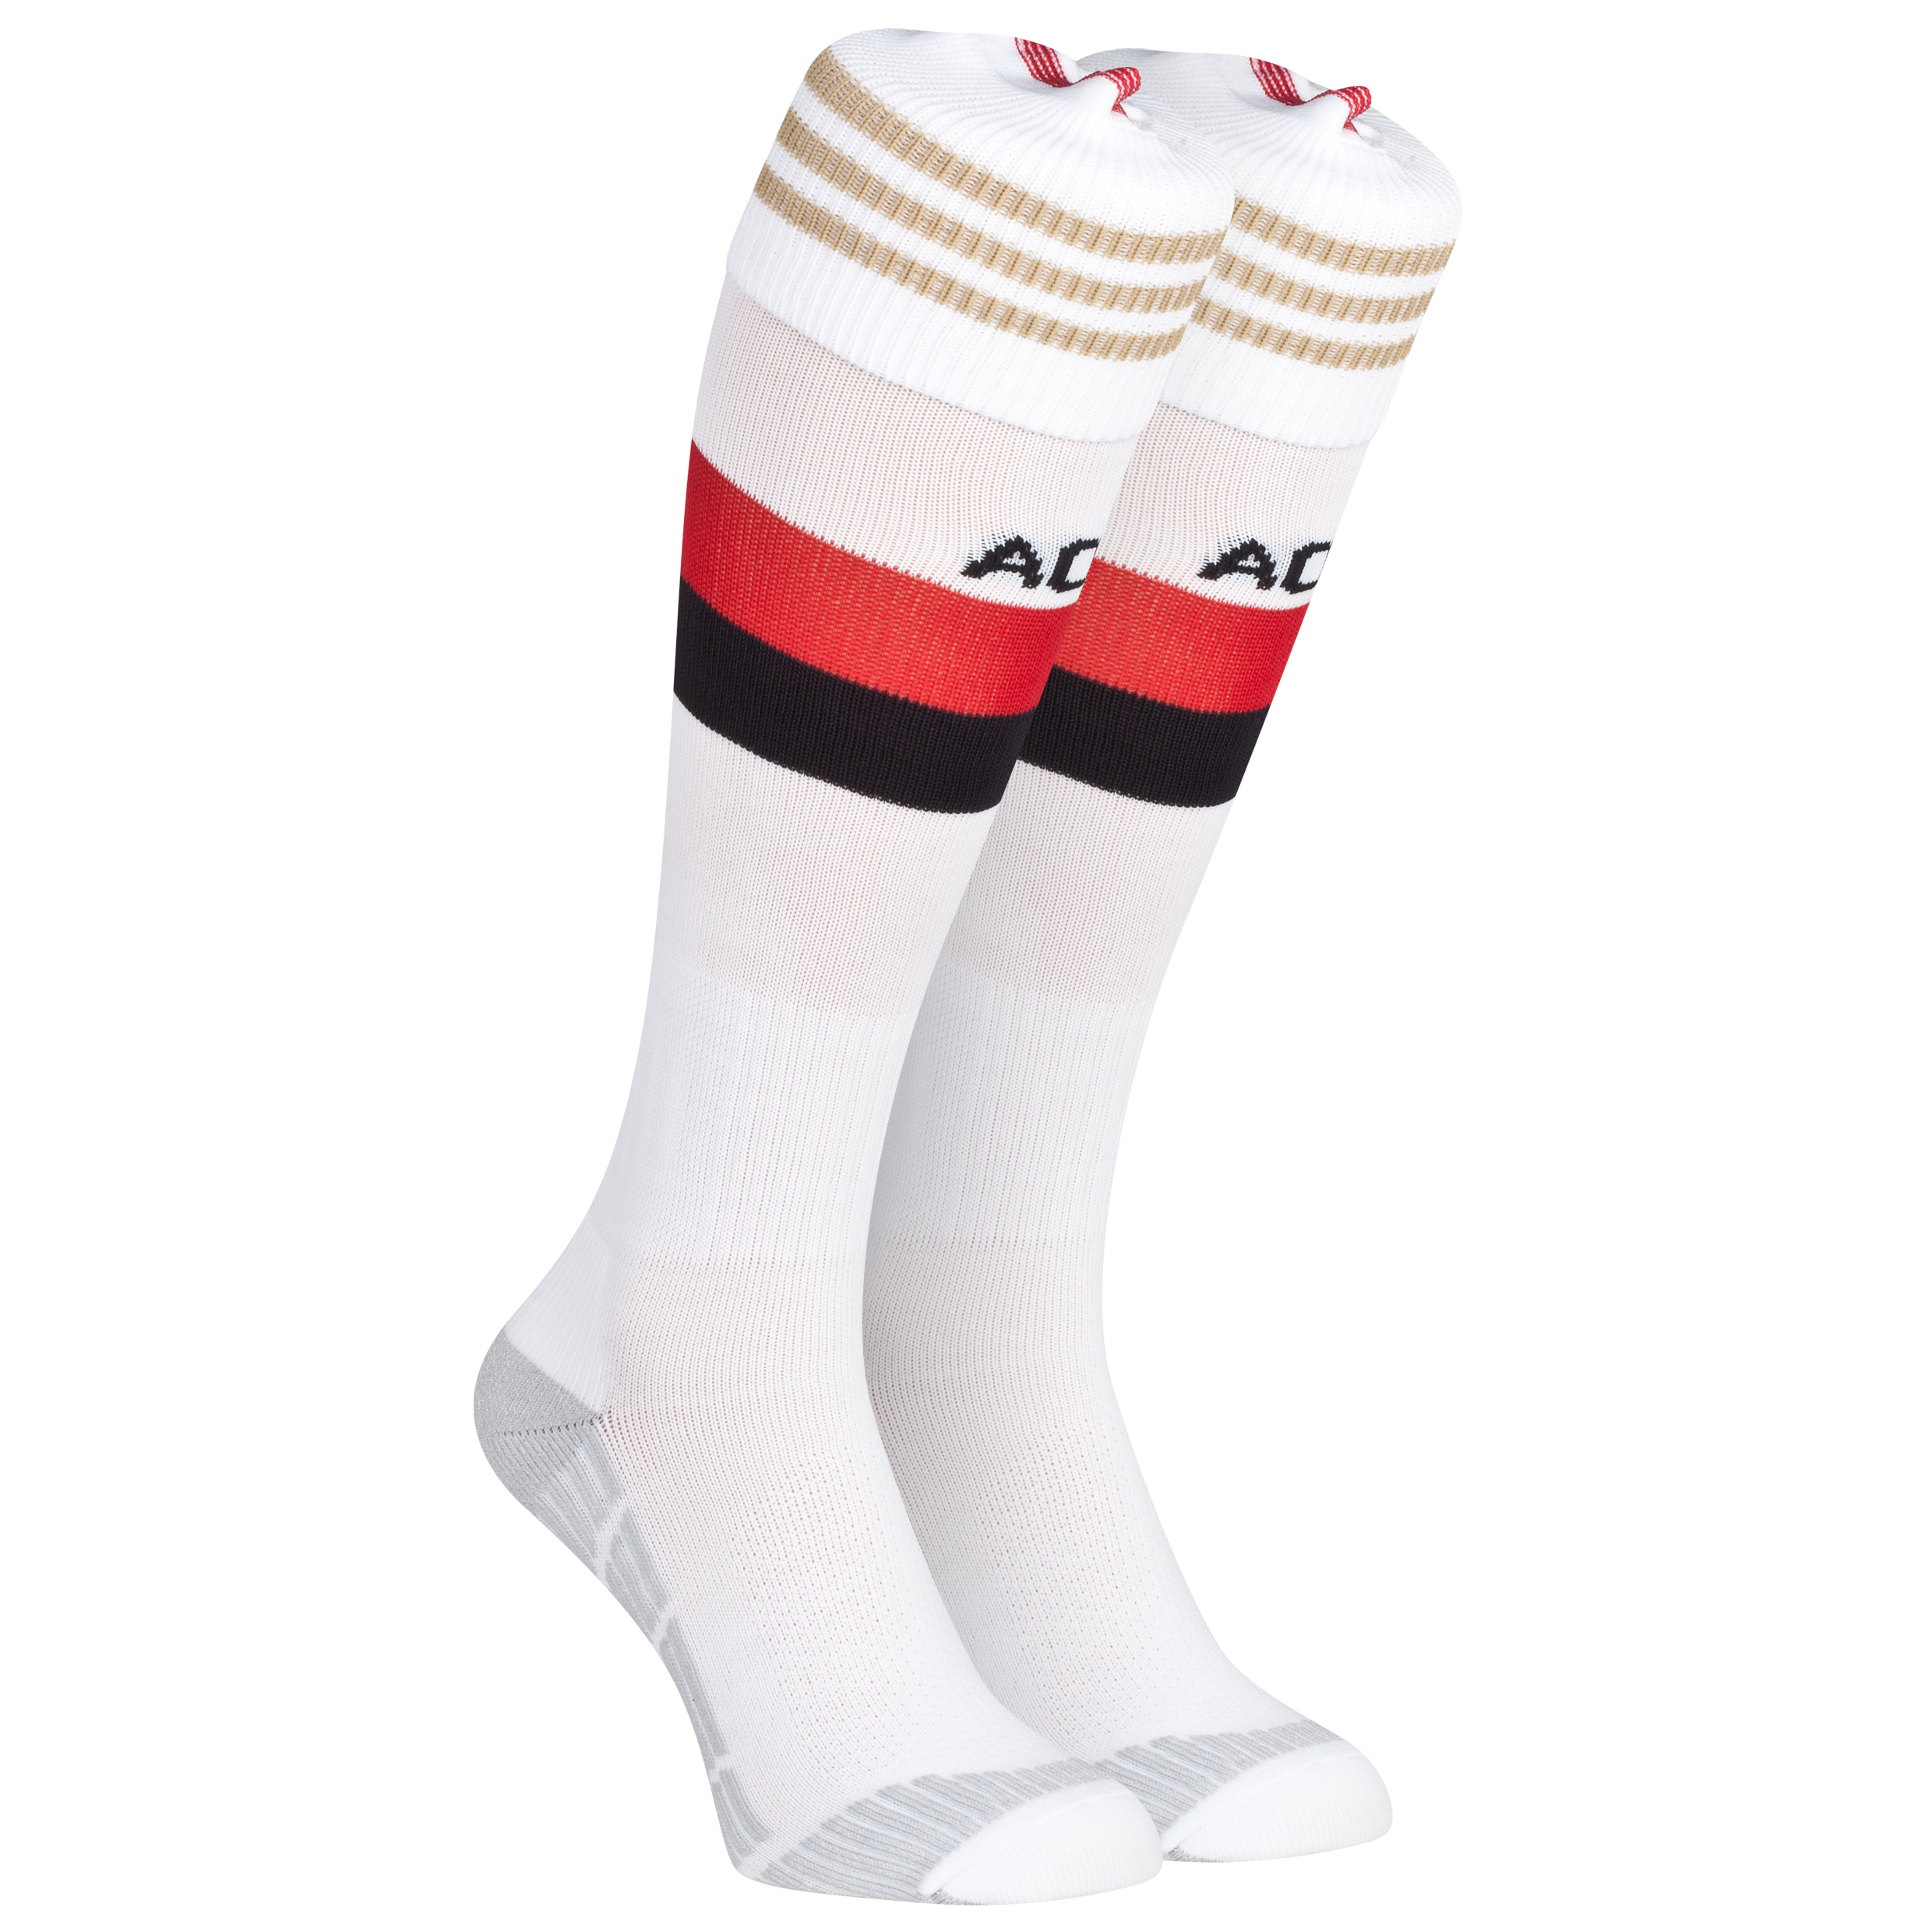 AC Milan Away Socks 2013/14